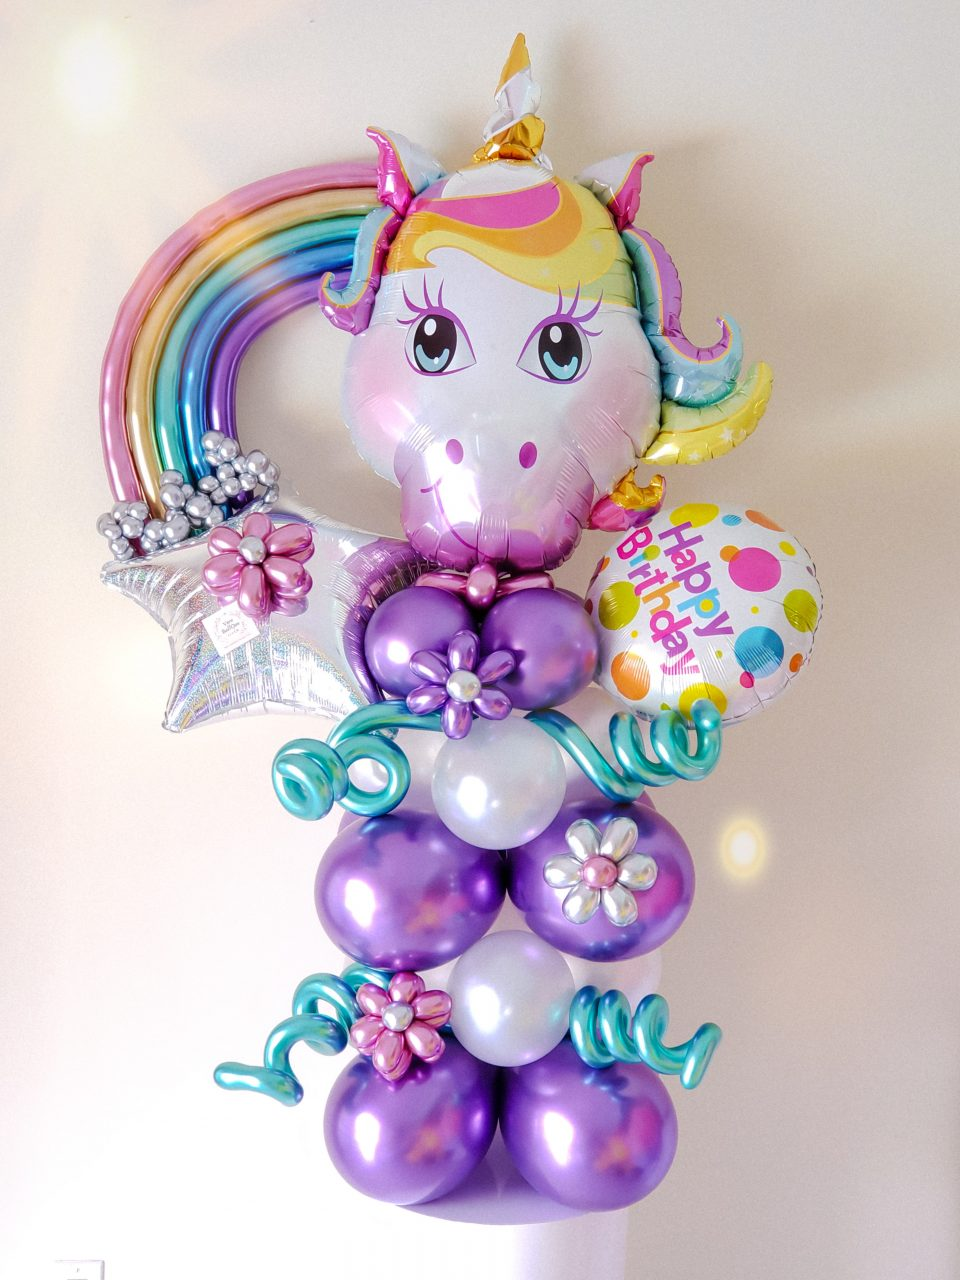 Rainbow Unicorn -Veroballoon.com Decorations Miami